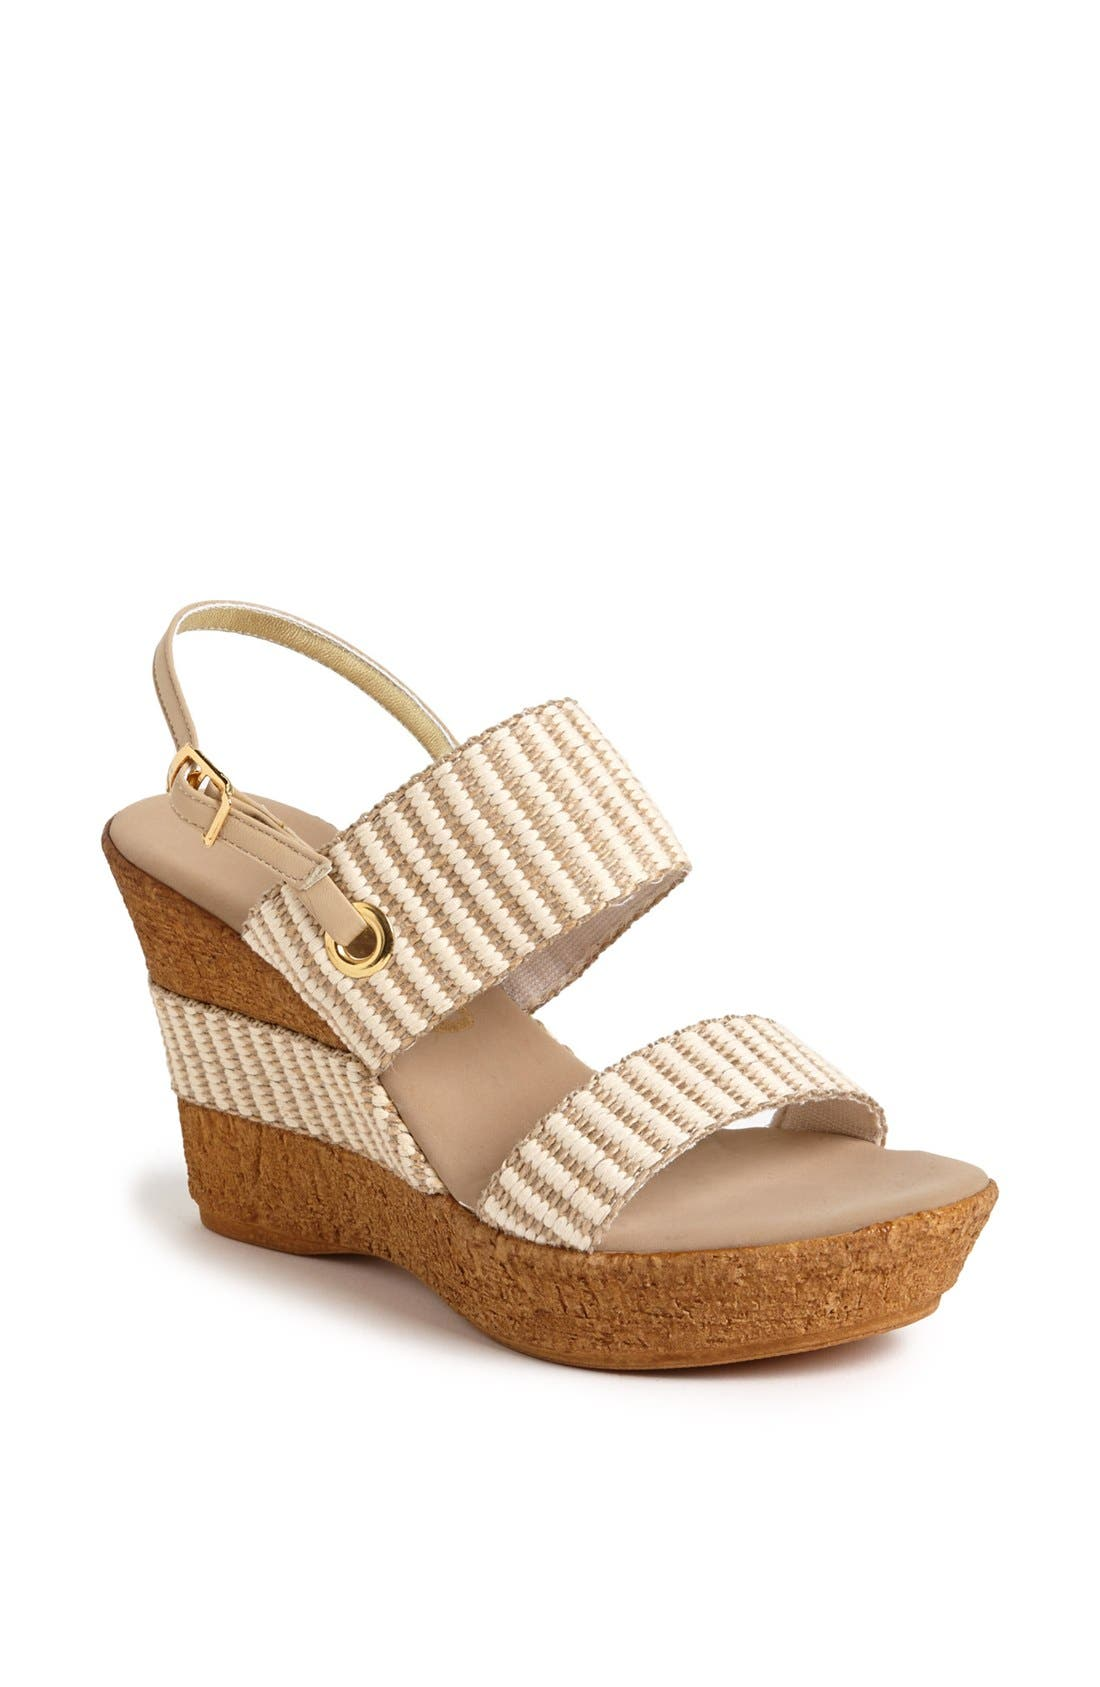 Alternate Image 1 Selected - Onex 'Thalia' Sandal